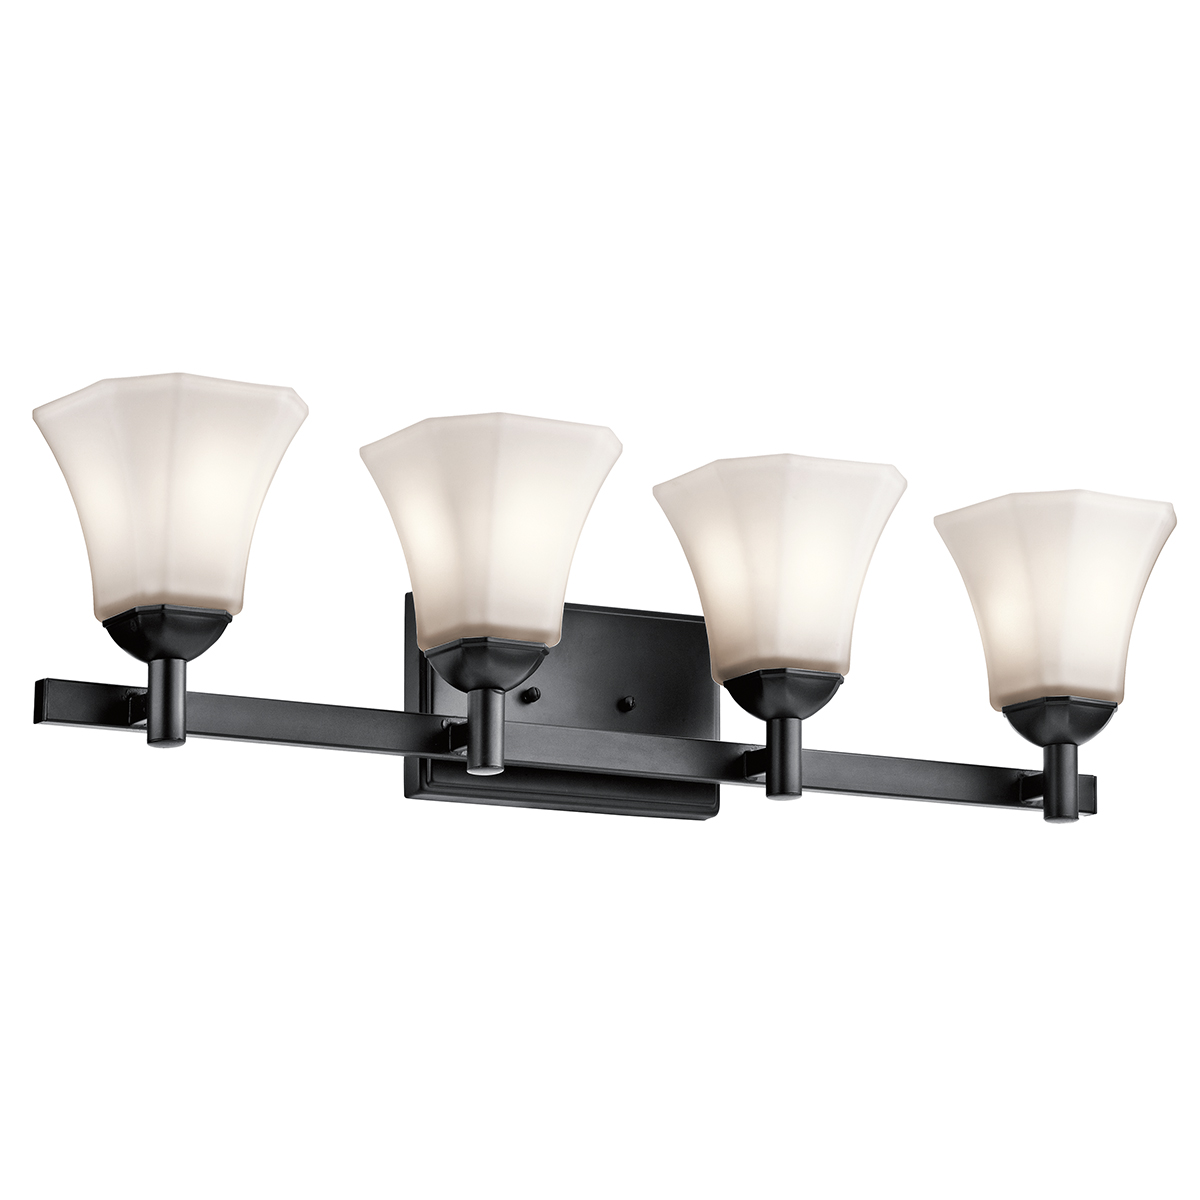 Vanity Light Fixture Black : Kichler Lighting (45734BK) Serena 4-Light Bath Vanity Fixture in Black